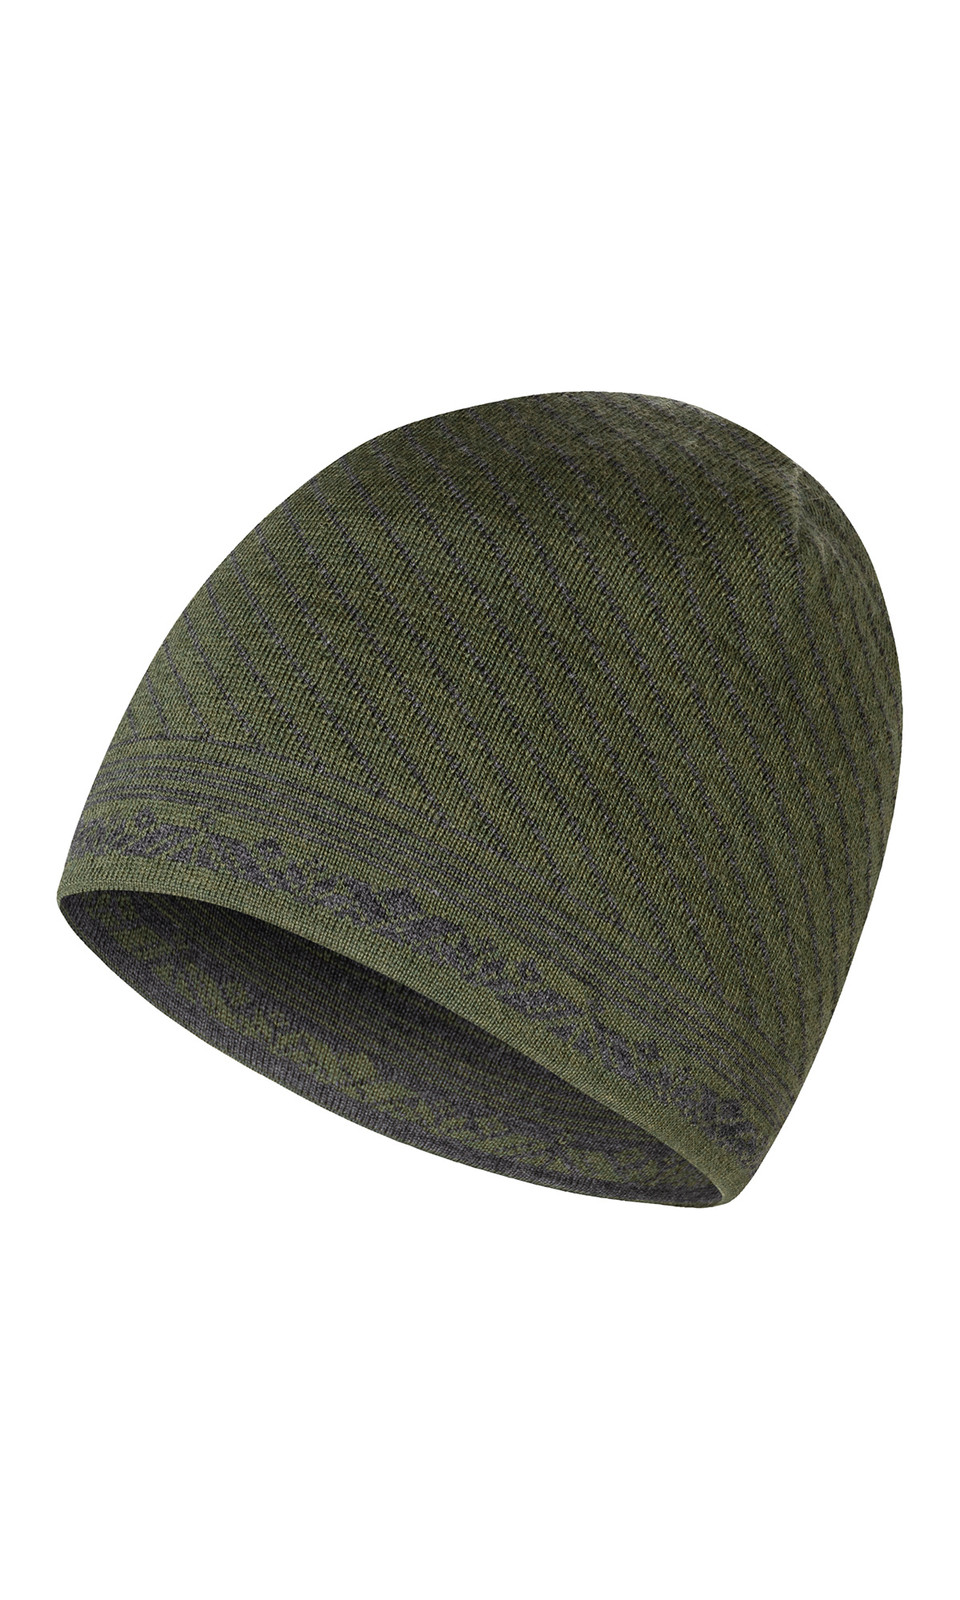 Dale of Norway André Hat - Dark Green/Dark Charcoal, 48771-G (48771-G)